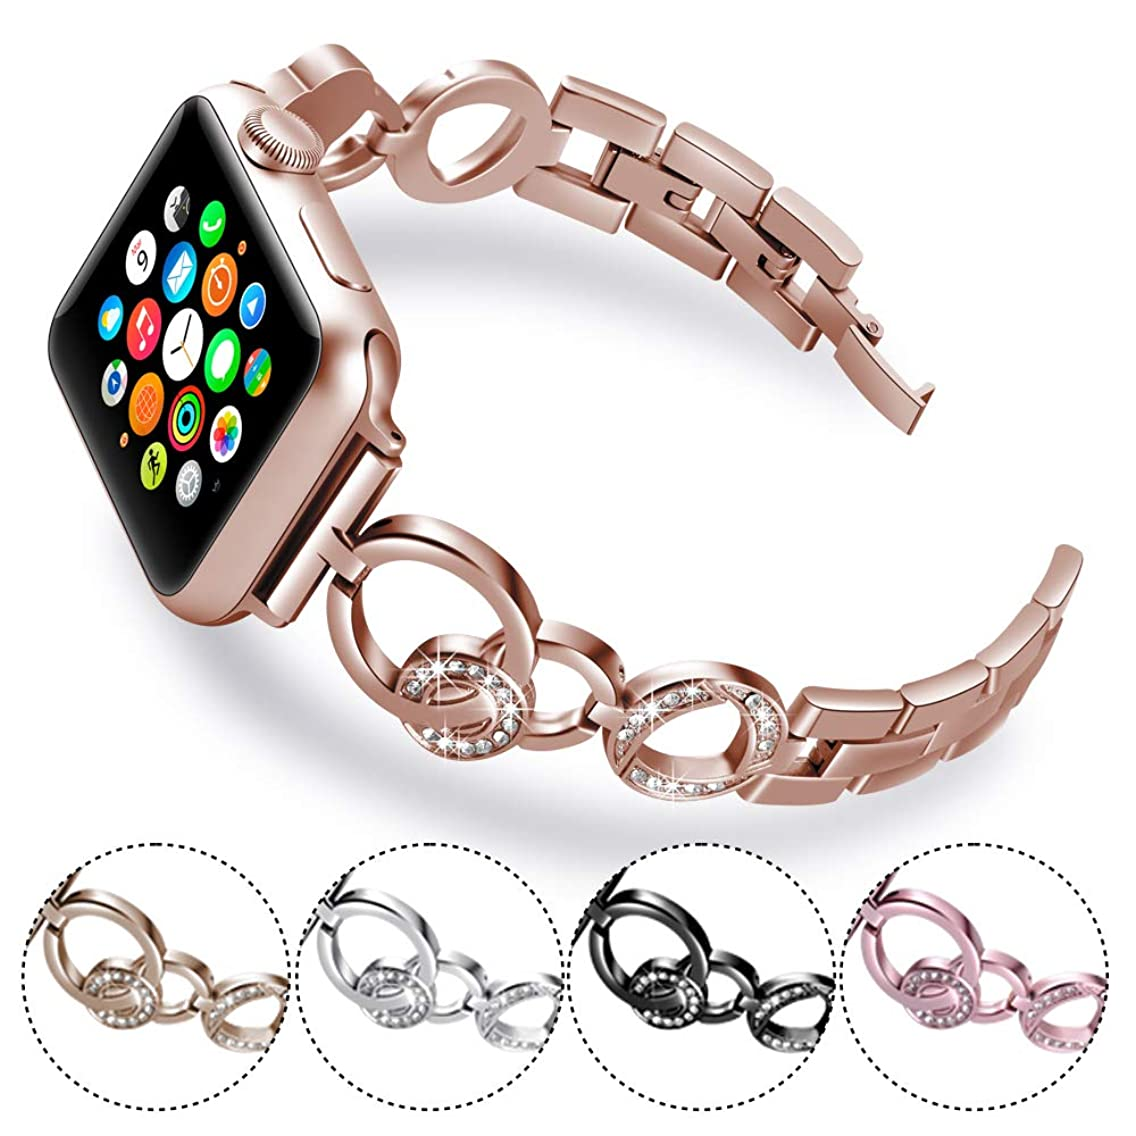 KARBYE Slim Women Band Compatible for Apple Watch Band 42mm 44mm Rose Gold for Series 4/3/2/1, Glitter Iwatch Bands Compatible for Apple Watch Bracelet 42mm 44mm for Women (Rose Gold)